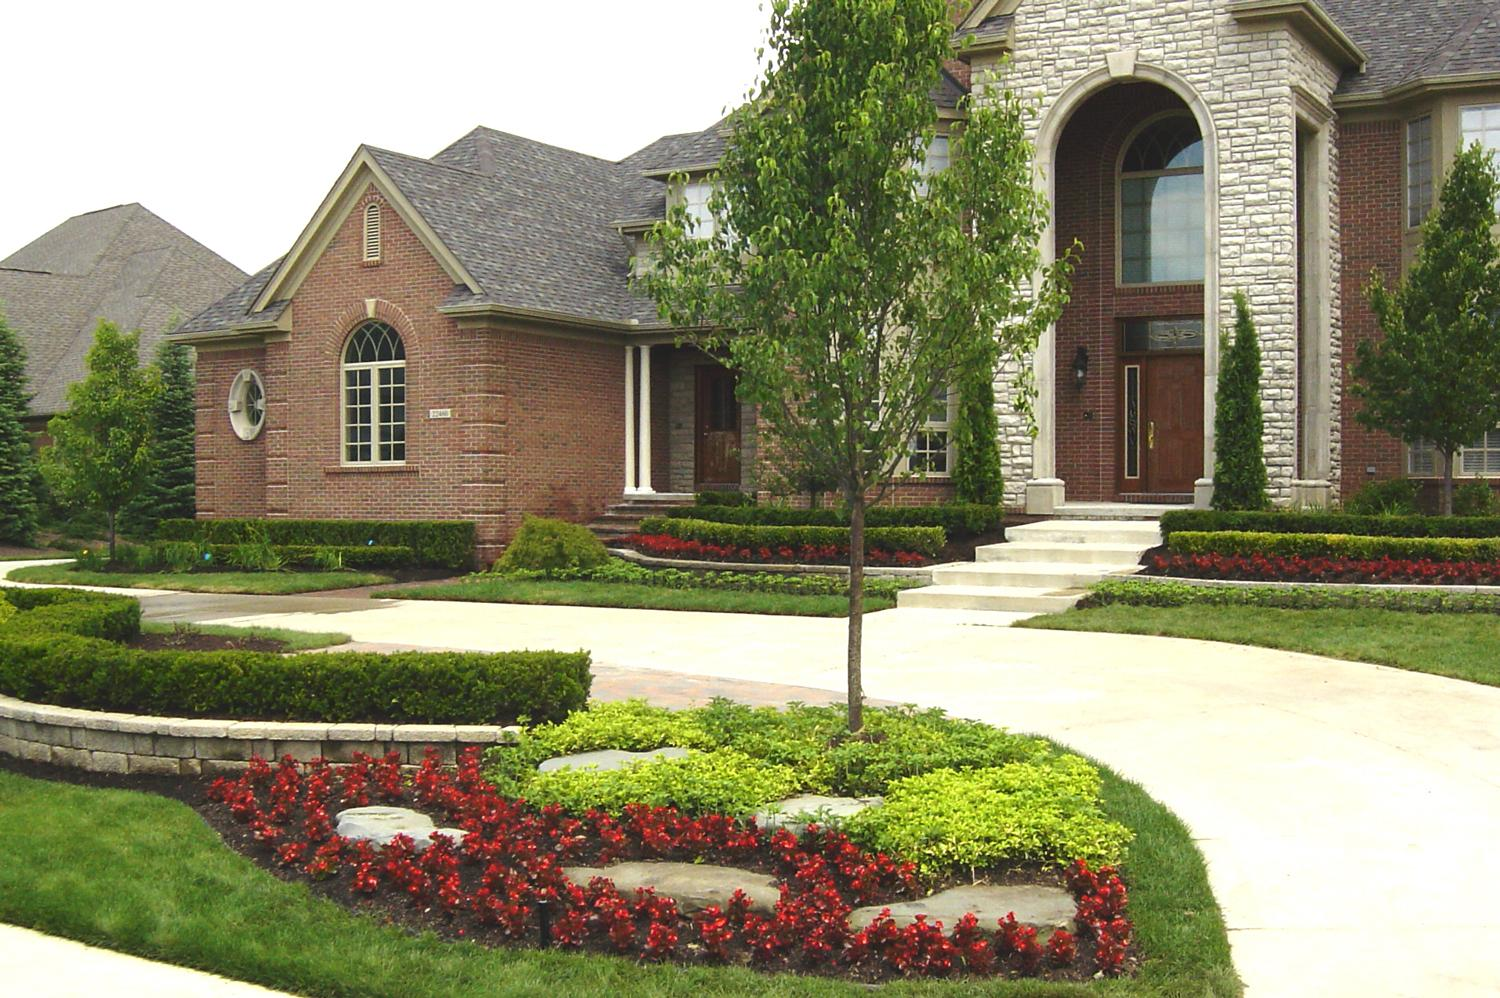 Front yard landscaping ideas dream house experience for Ideas for my front garden